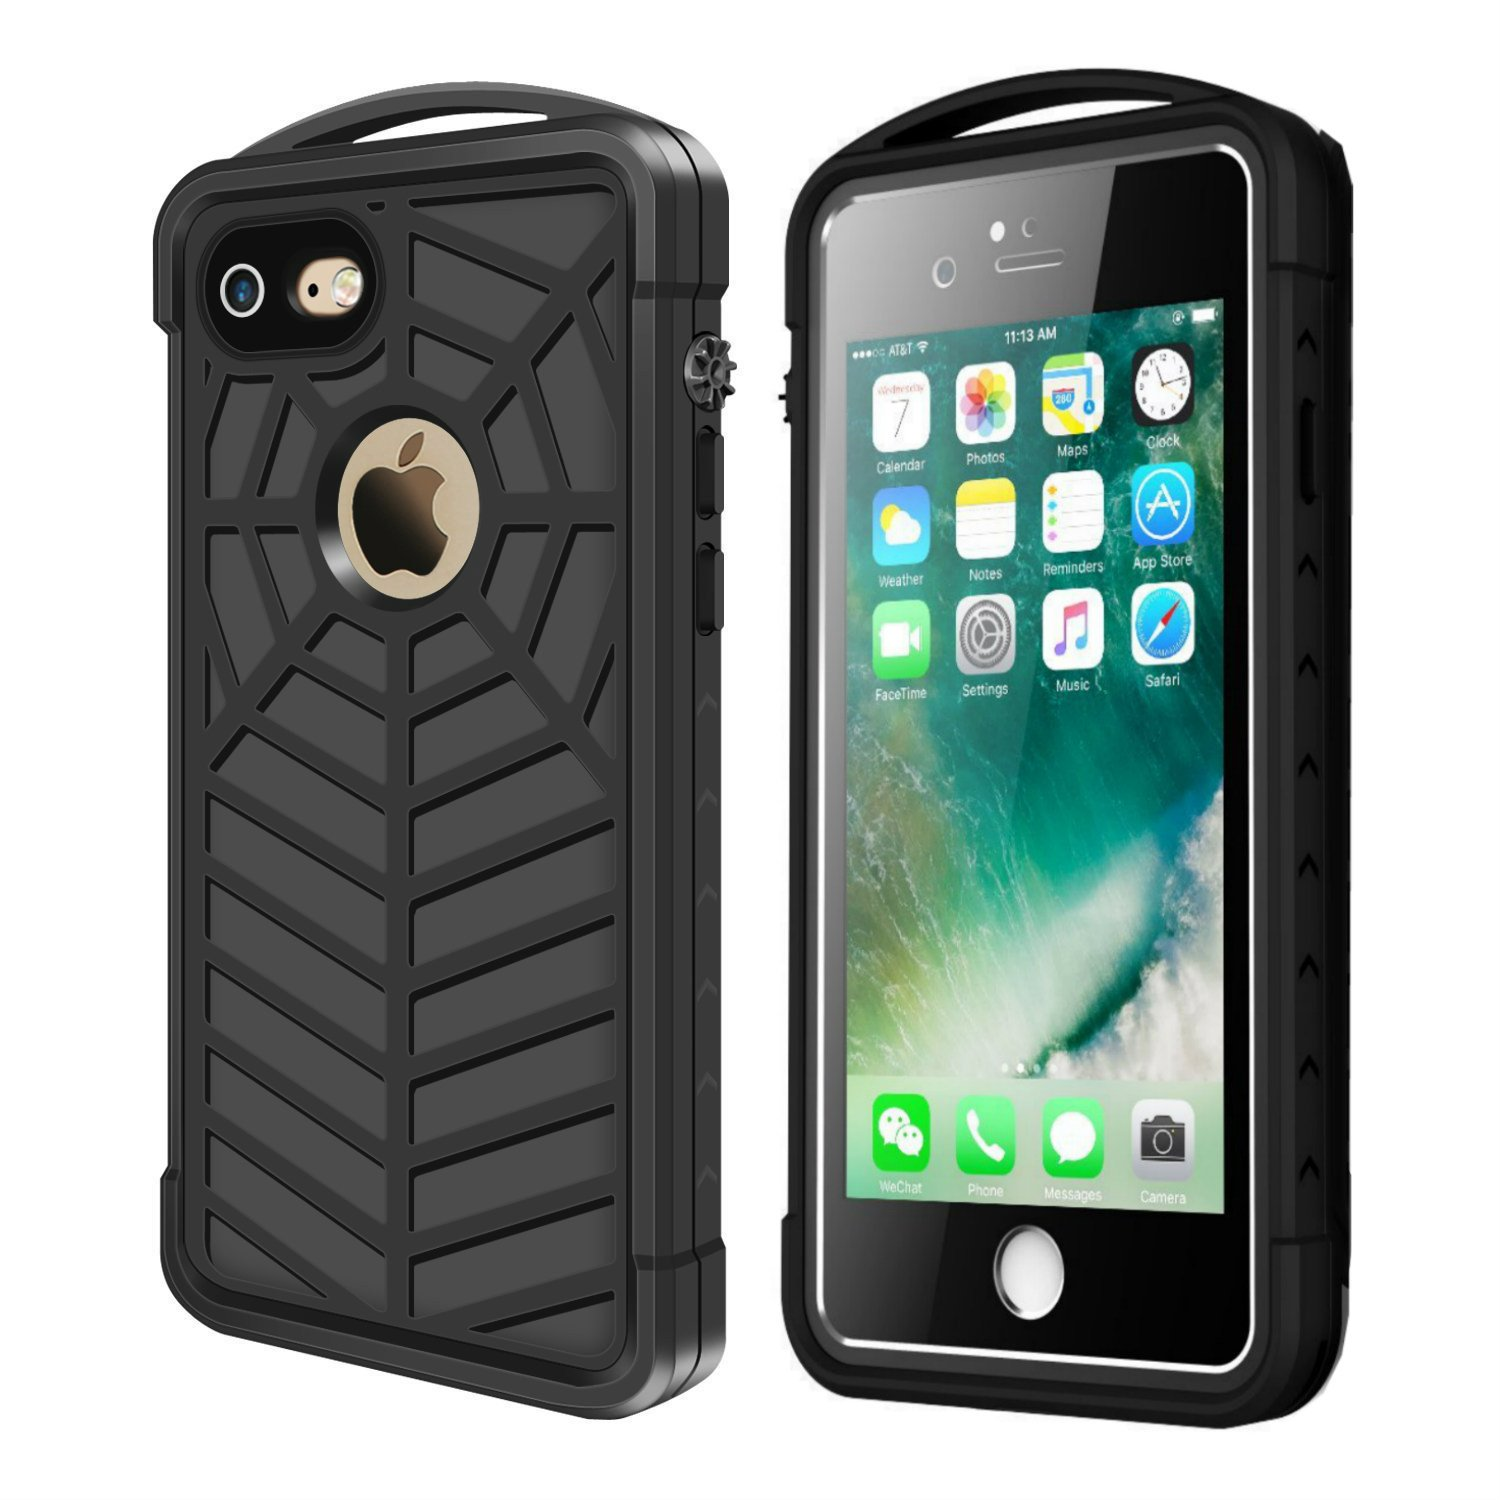 iThrough iPhone 7 8 Waterproof Case, iPhone 7 Underwater Case With Spiderweb Design, Sensitive touch screen, Full Sealed Sport outdoor Case Cover with Portable Hook for iPhone 7/8(4.7 Inch) (Black)